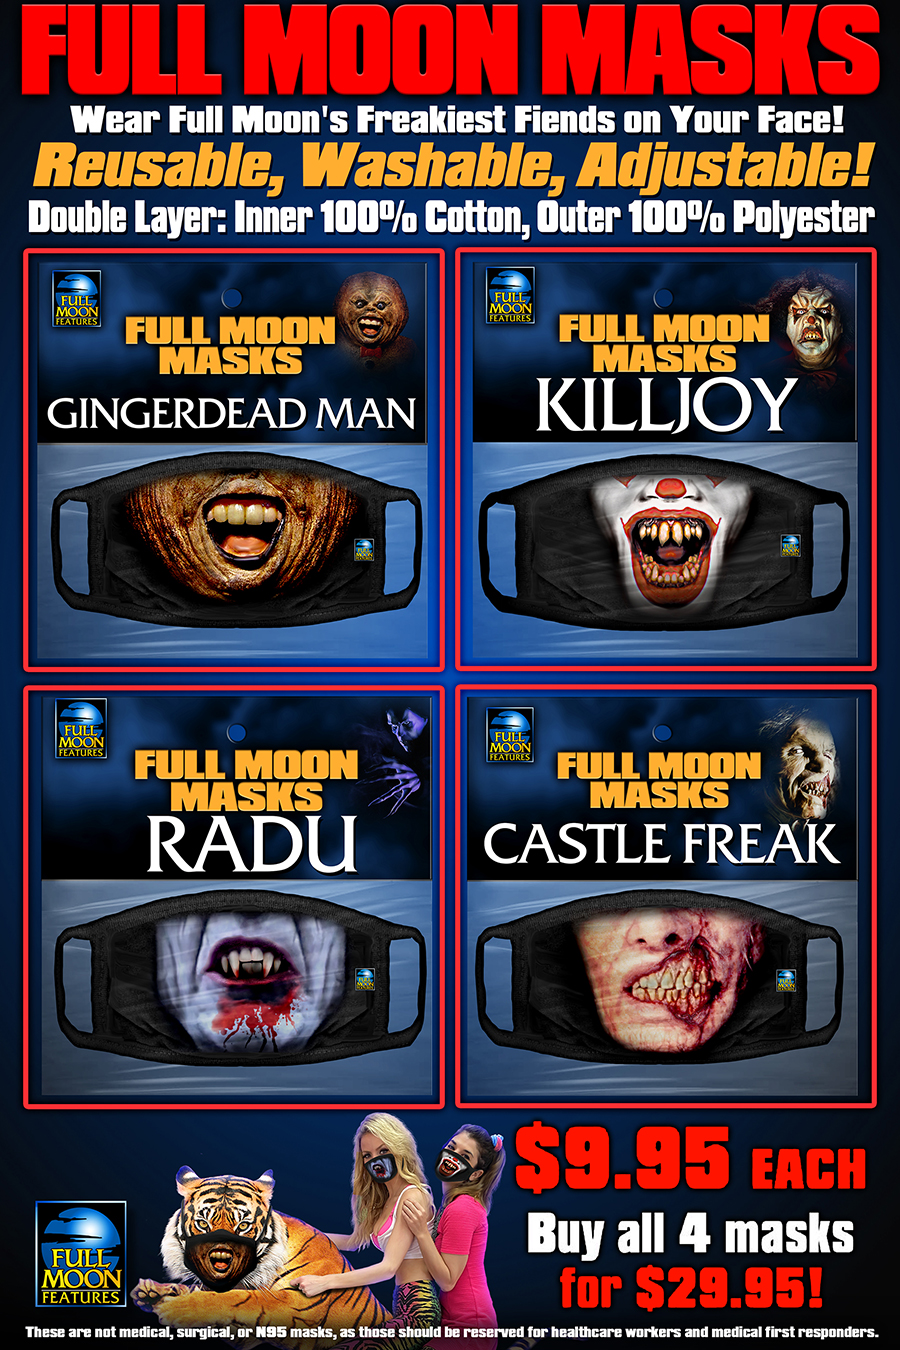 Full Moon Masks 4 PACK: Series 2 (Radu, GDM, Killjoy, Castle Freak)